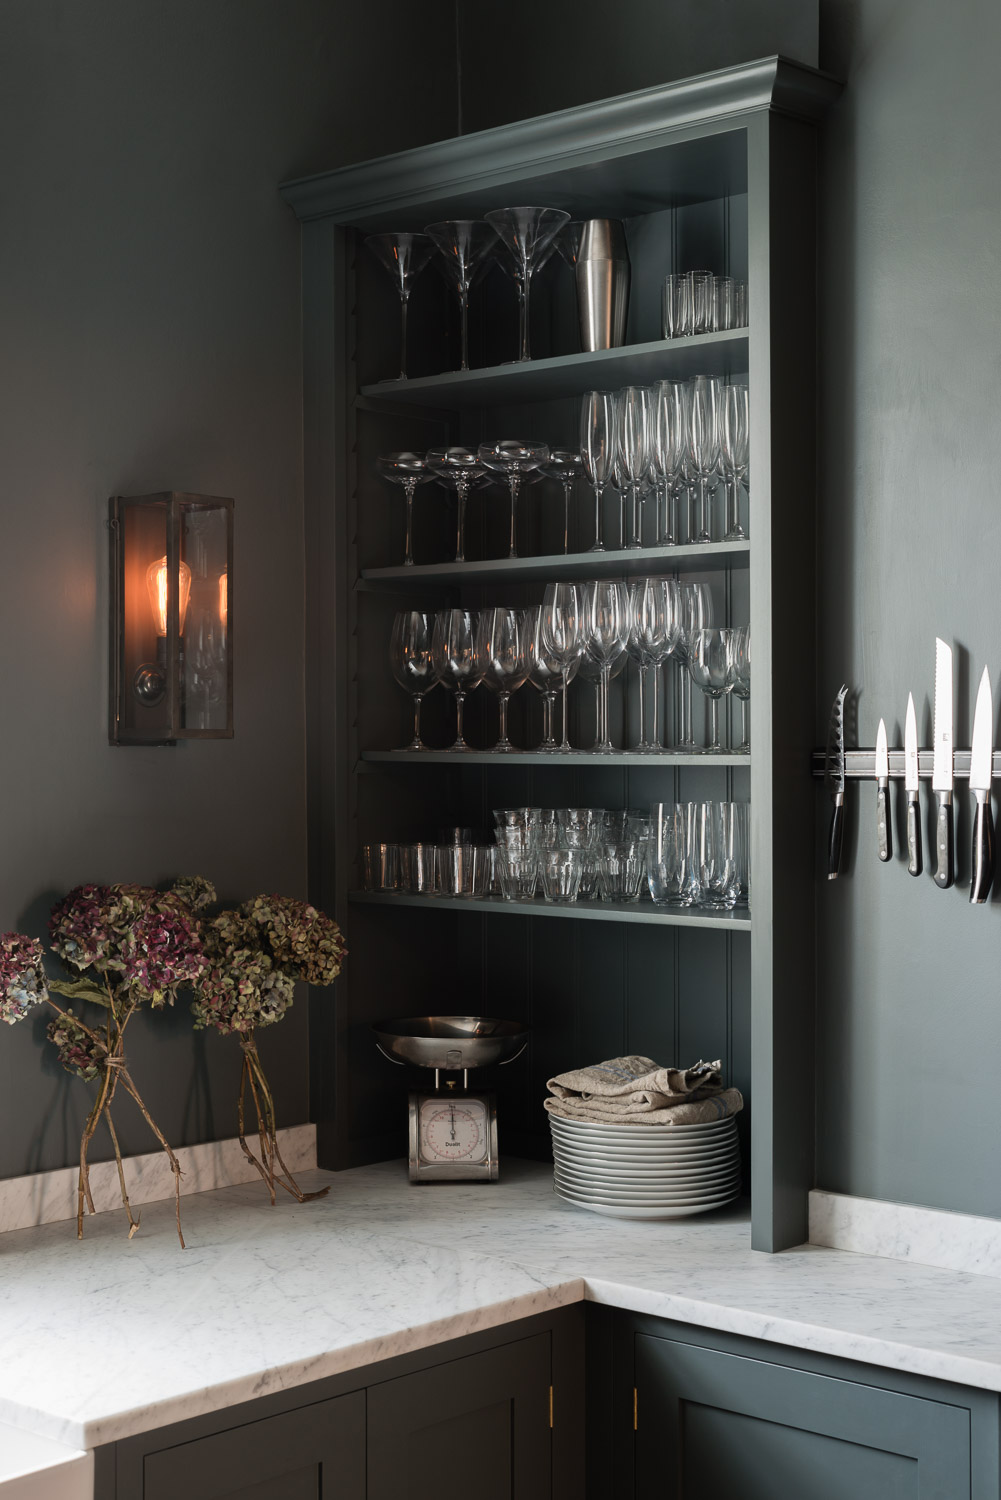 The Bloomsbury Kitchen uses Carrara marble with a smooth, honed finish.